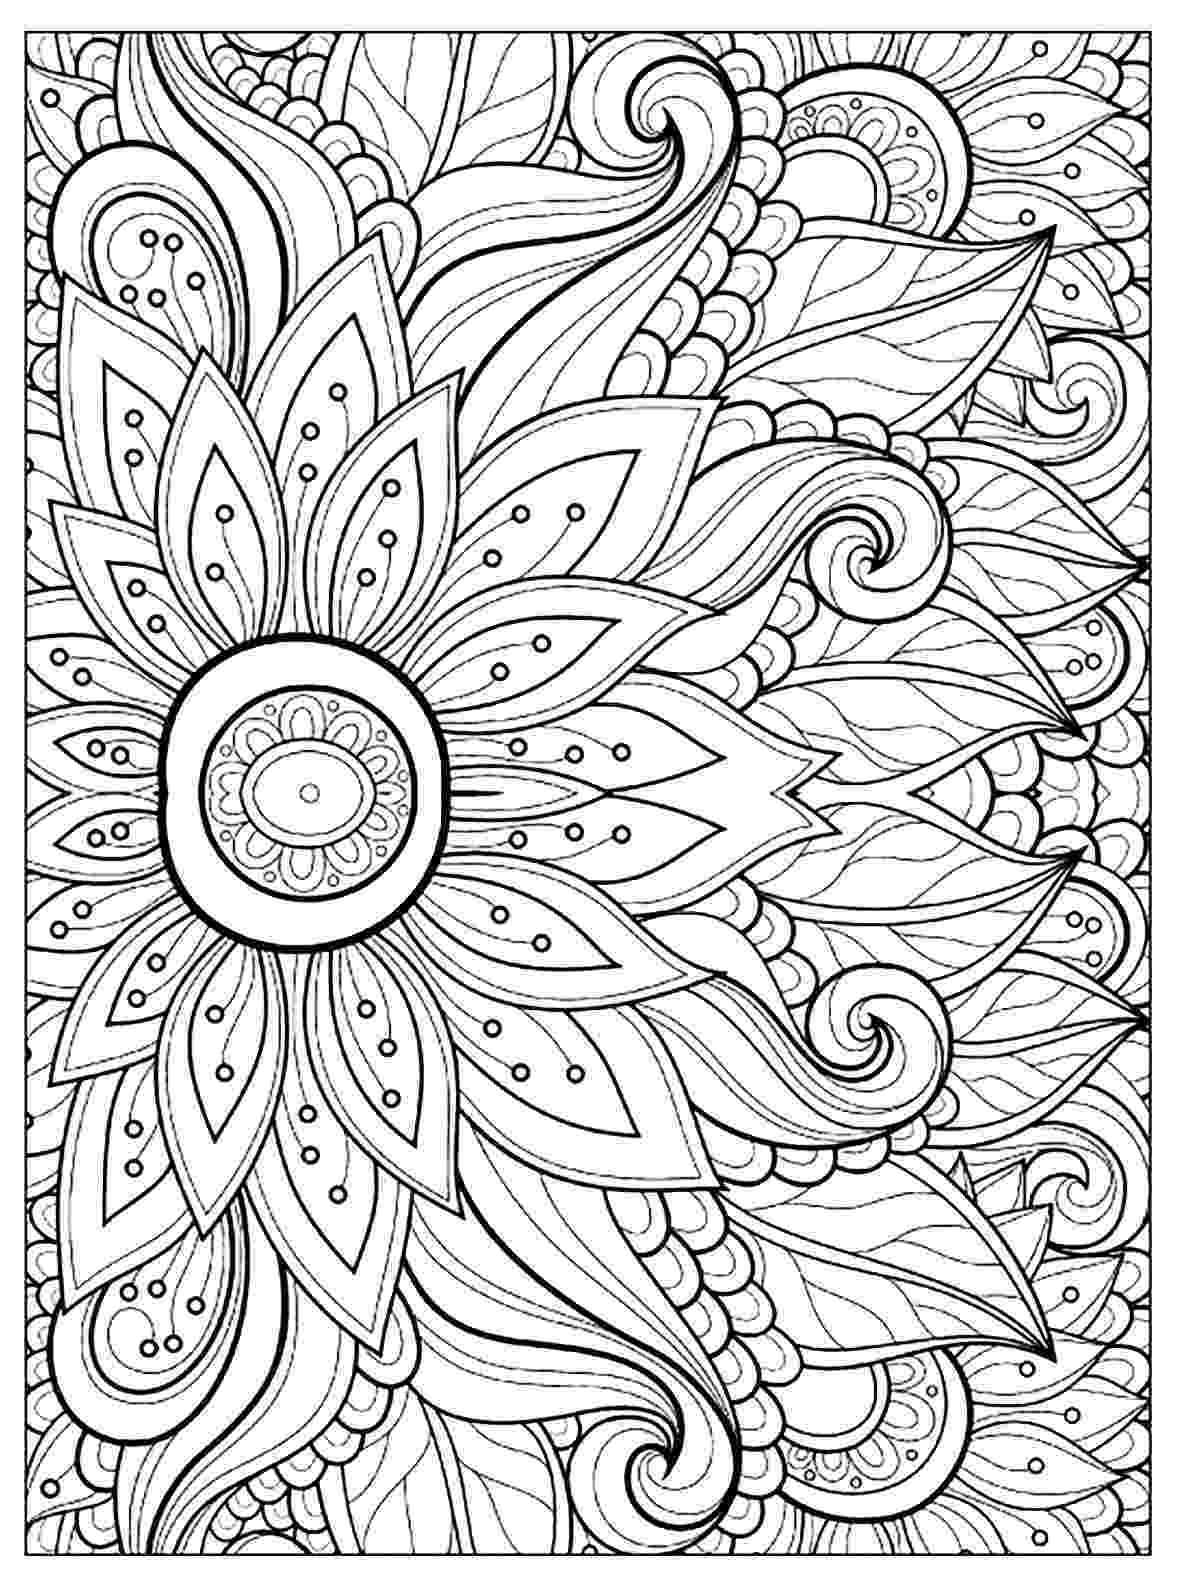 flower colouring pages flowers to download for free flowers kids coloring pages flower pages colouring